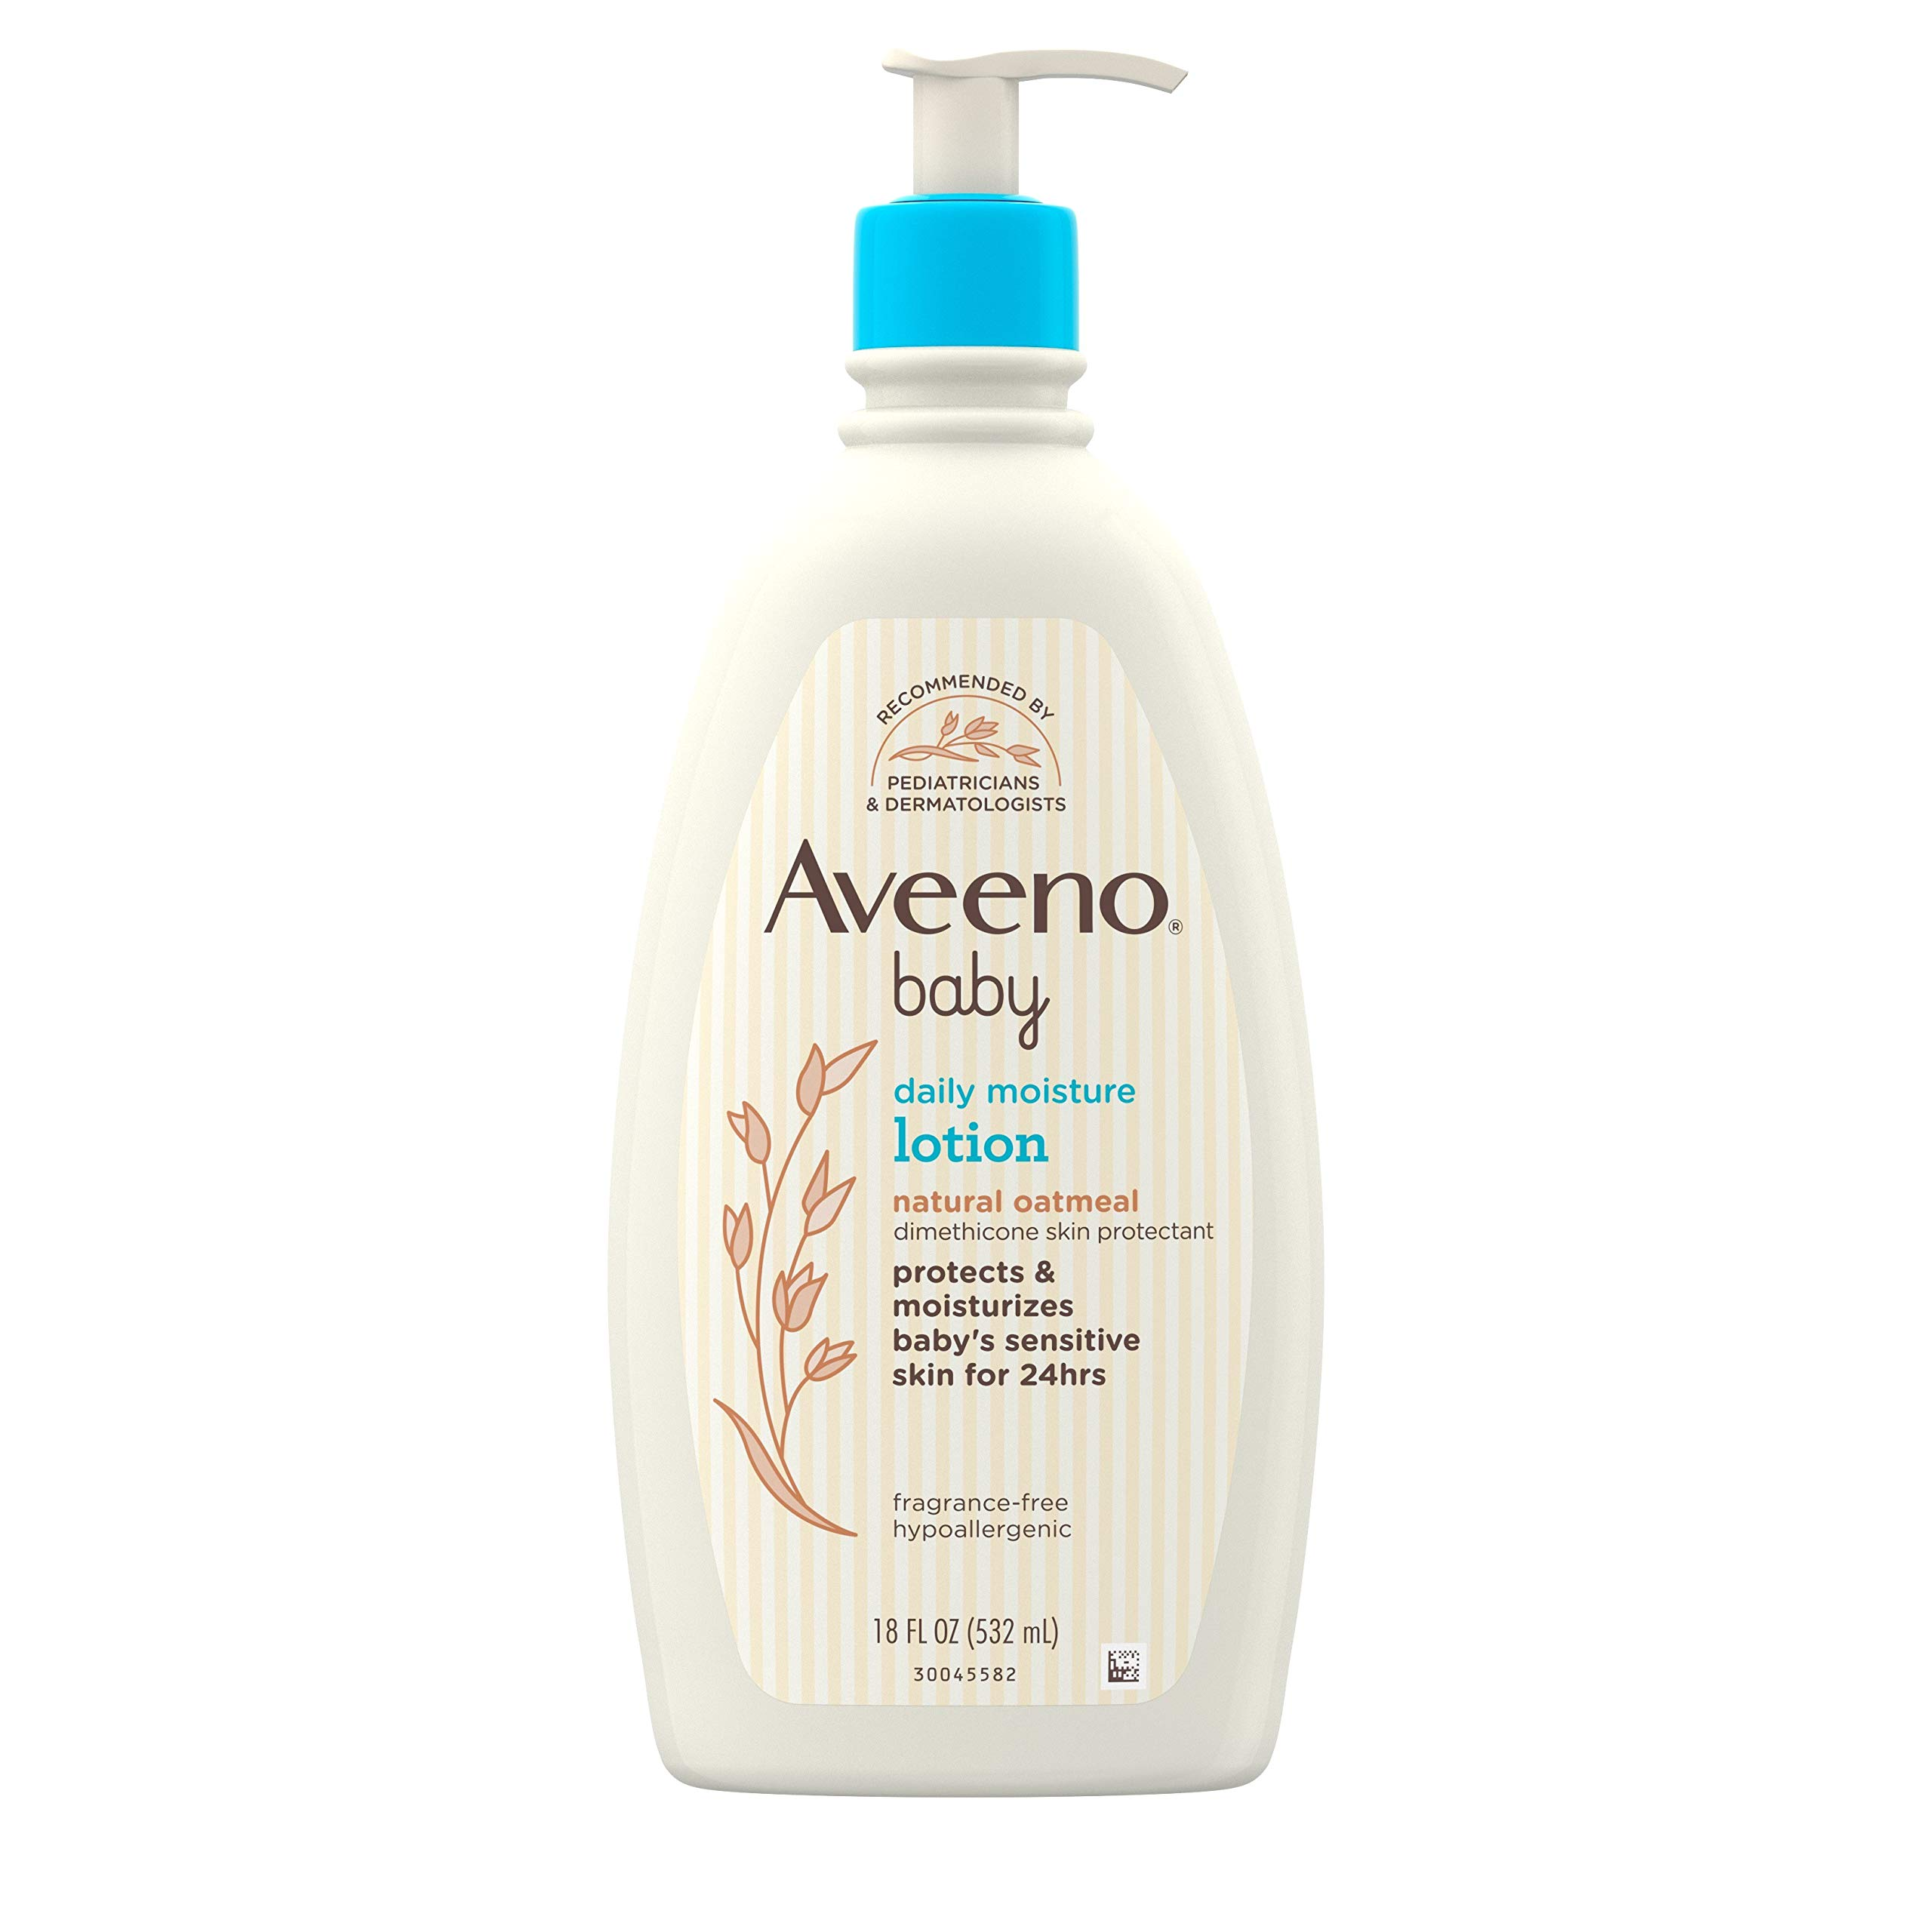 Aveeno Baby Daily Moisture Moisturizing Lotion for Delicate Skin with Natural Colloidal Oatmeal & Dimethicone, Hypoallergenic, Fragrance-, Phthalate- & Paraben-Free, 18 fl. oz